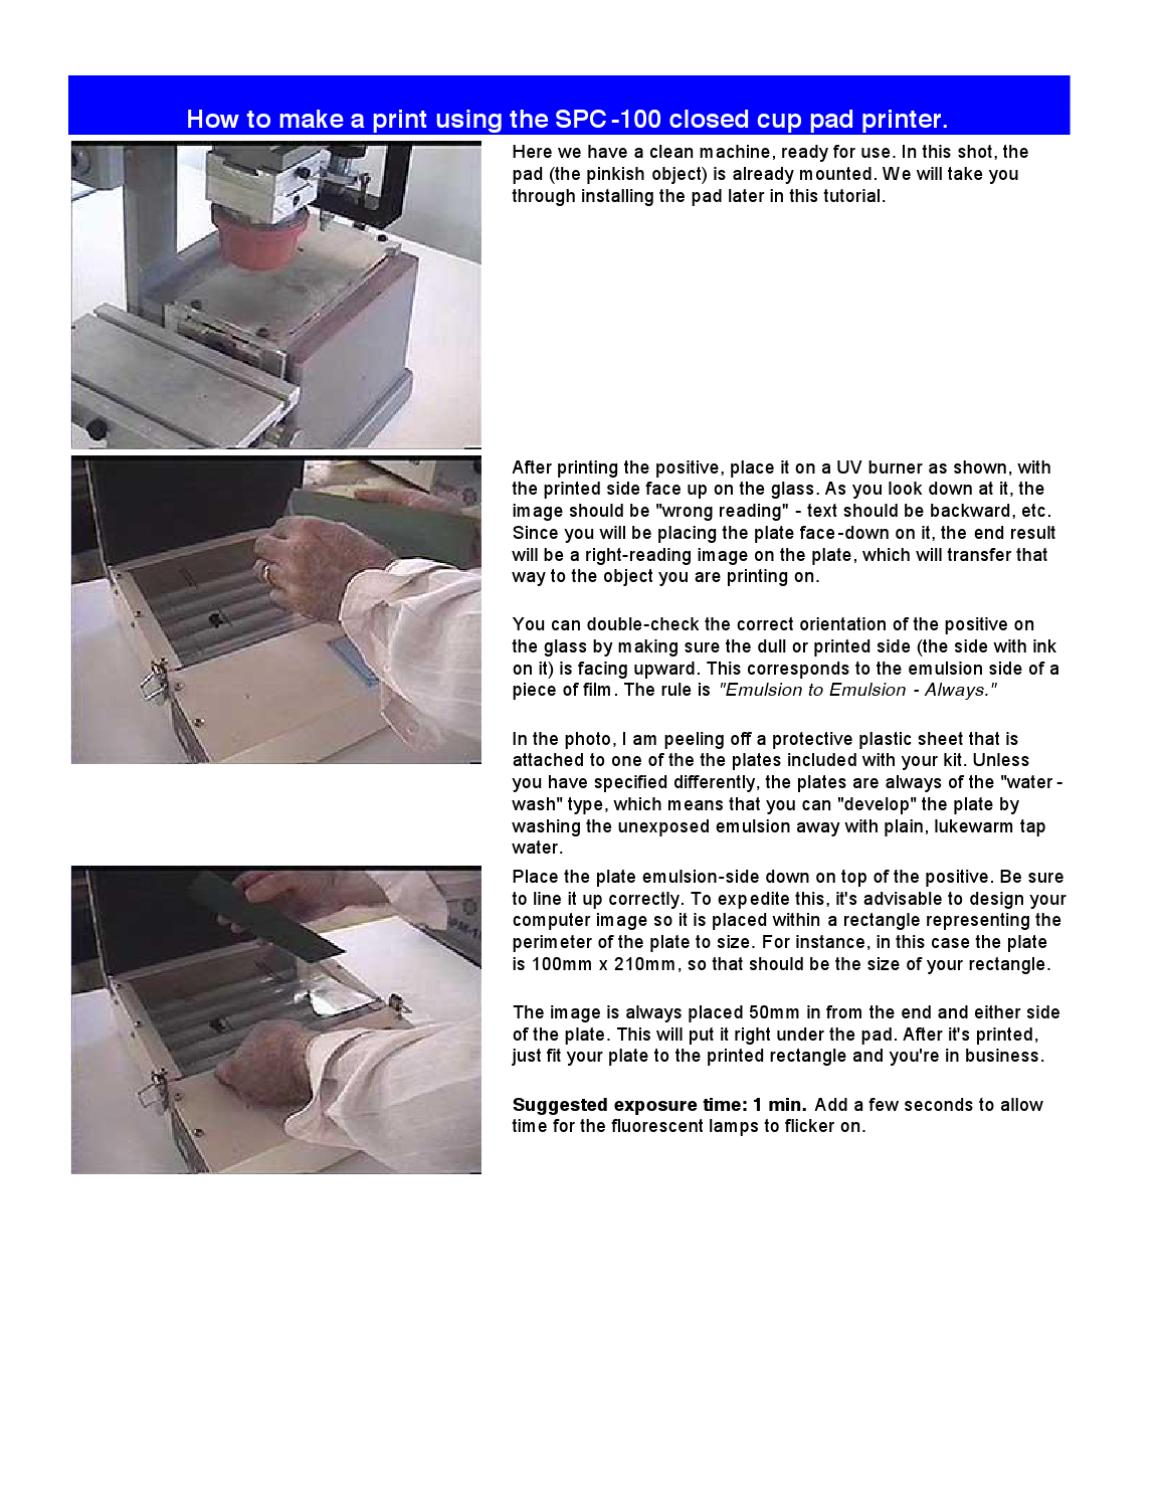 How to Print Using the SPC-100 by All American MFG & Supply